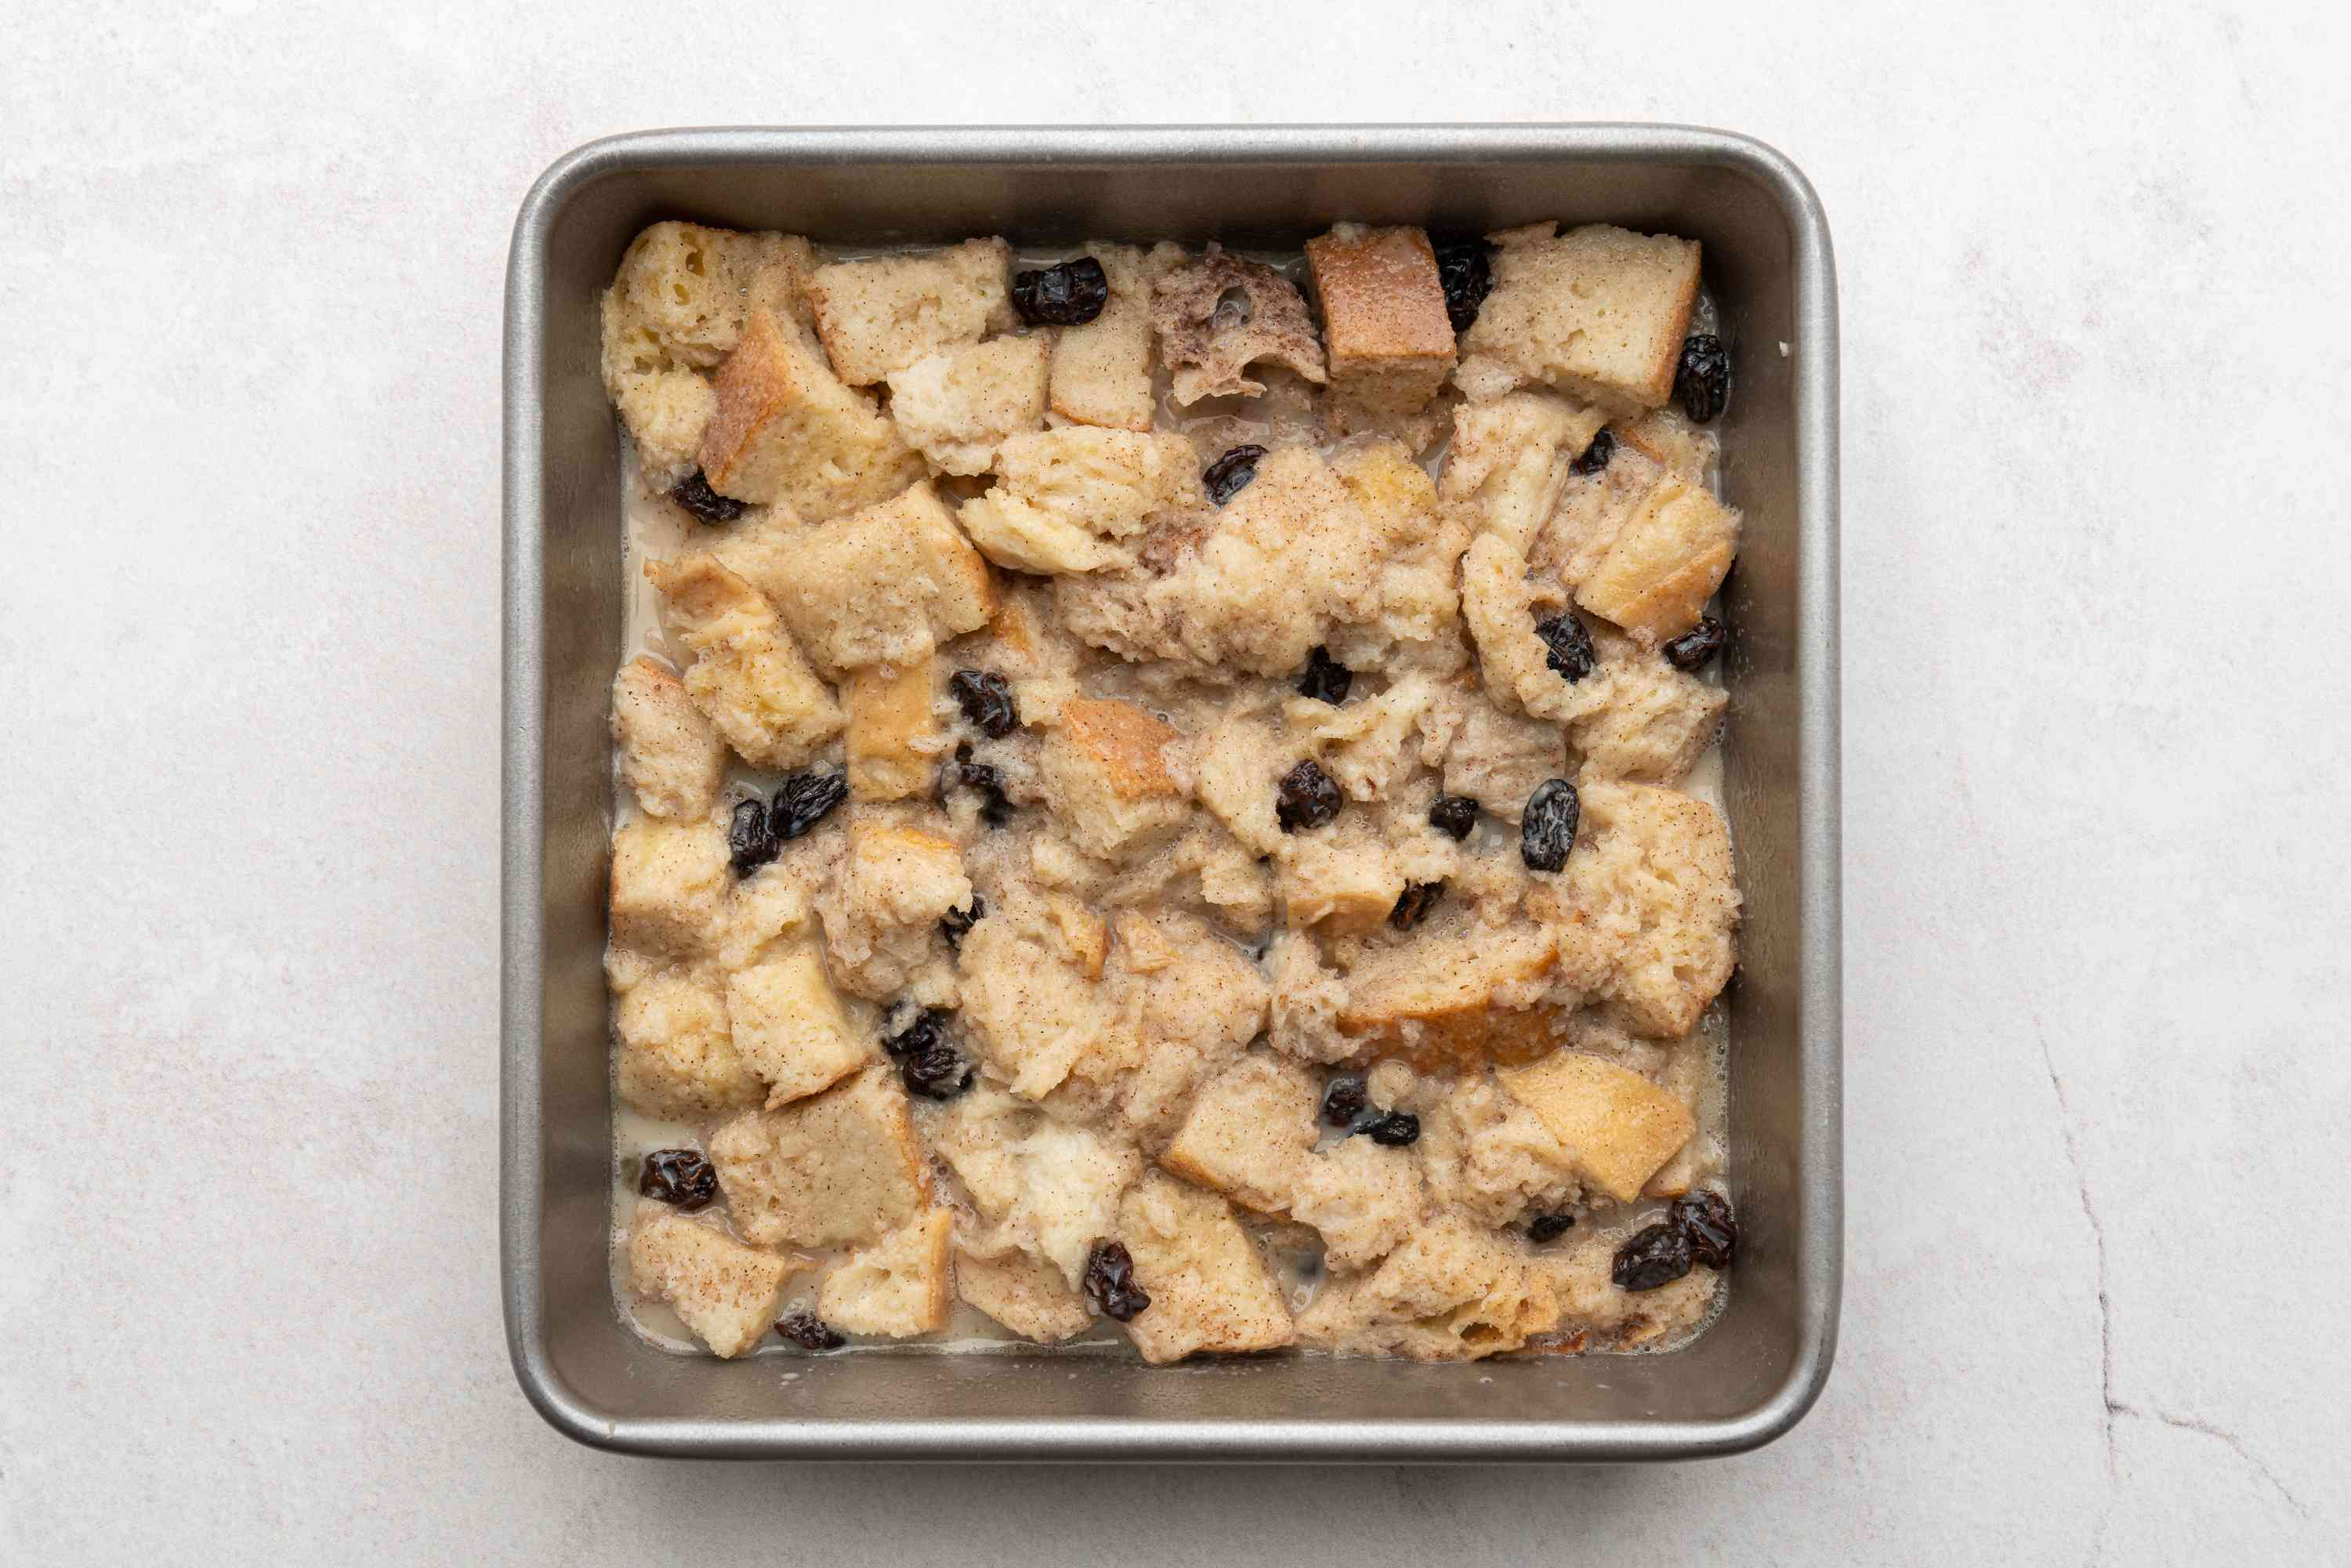 Old Fashioned Spiced Bread Pudding With Raisins mixture in a baking dish